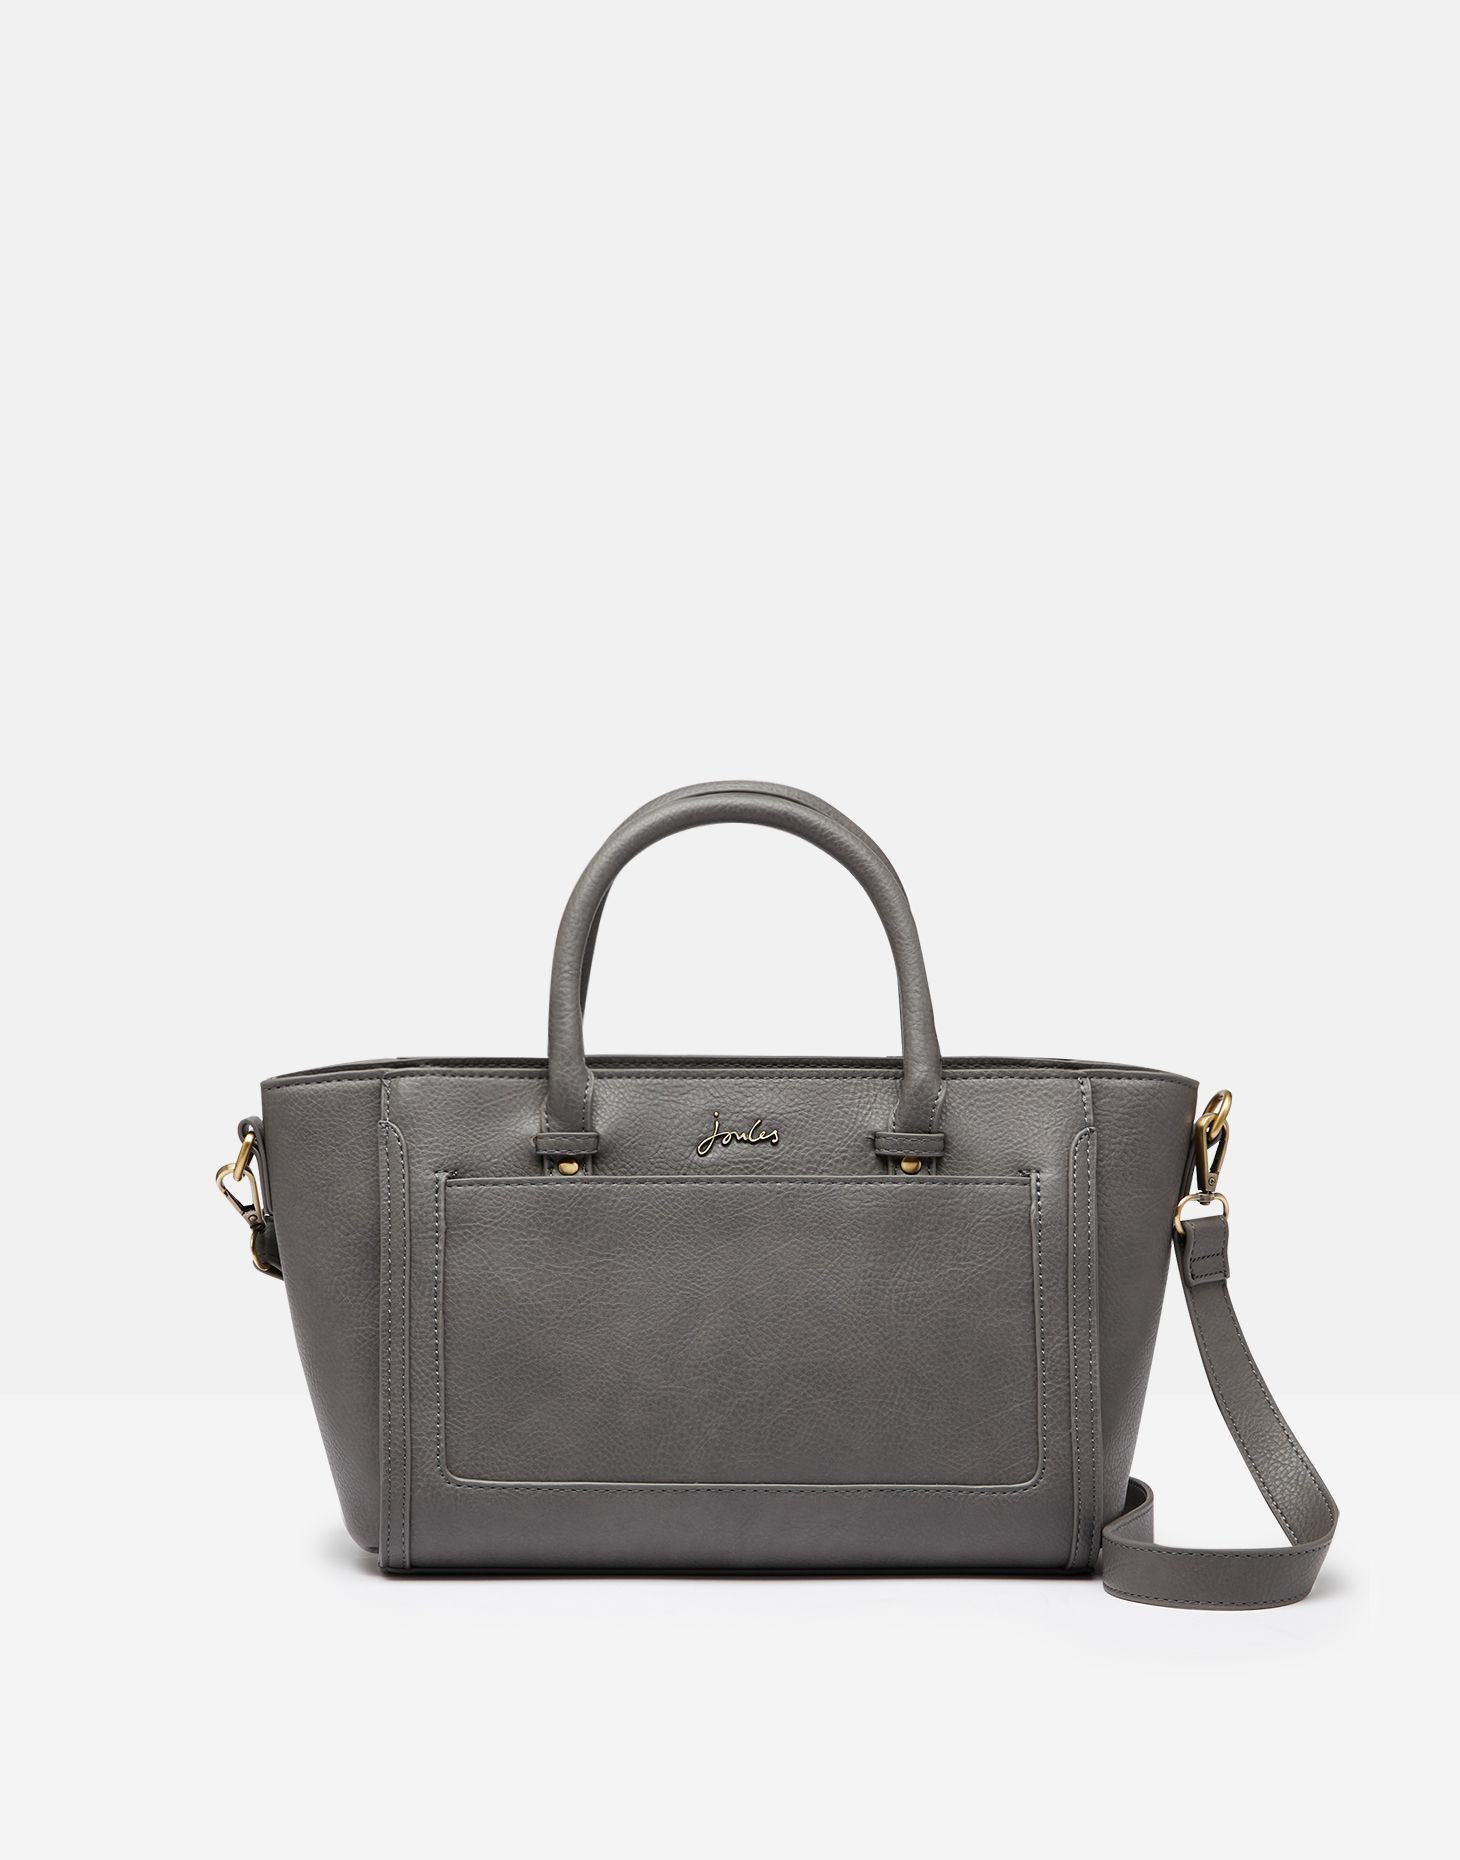 209453 Null Faux Leather Everyday Bag